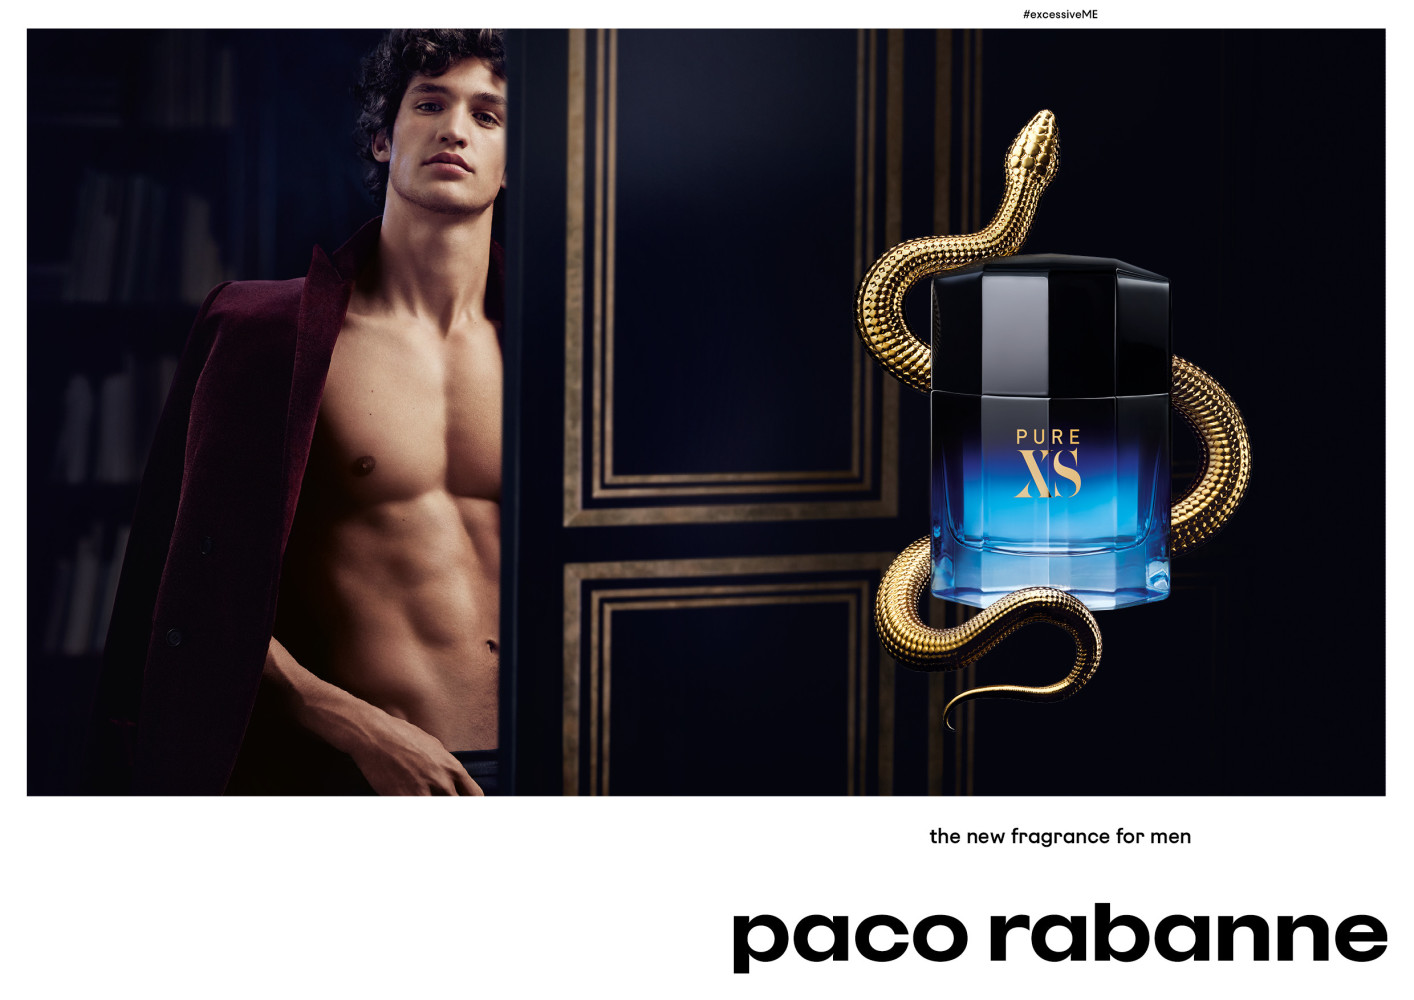 PACO RABANNE PURE XS FRAGRANCE